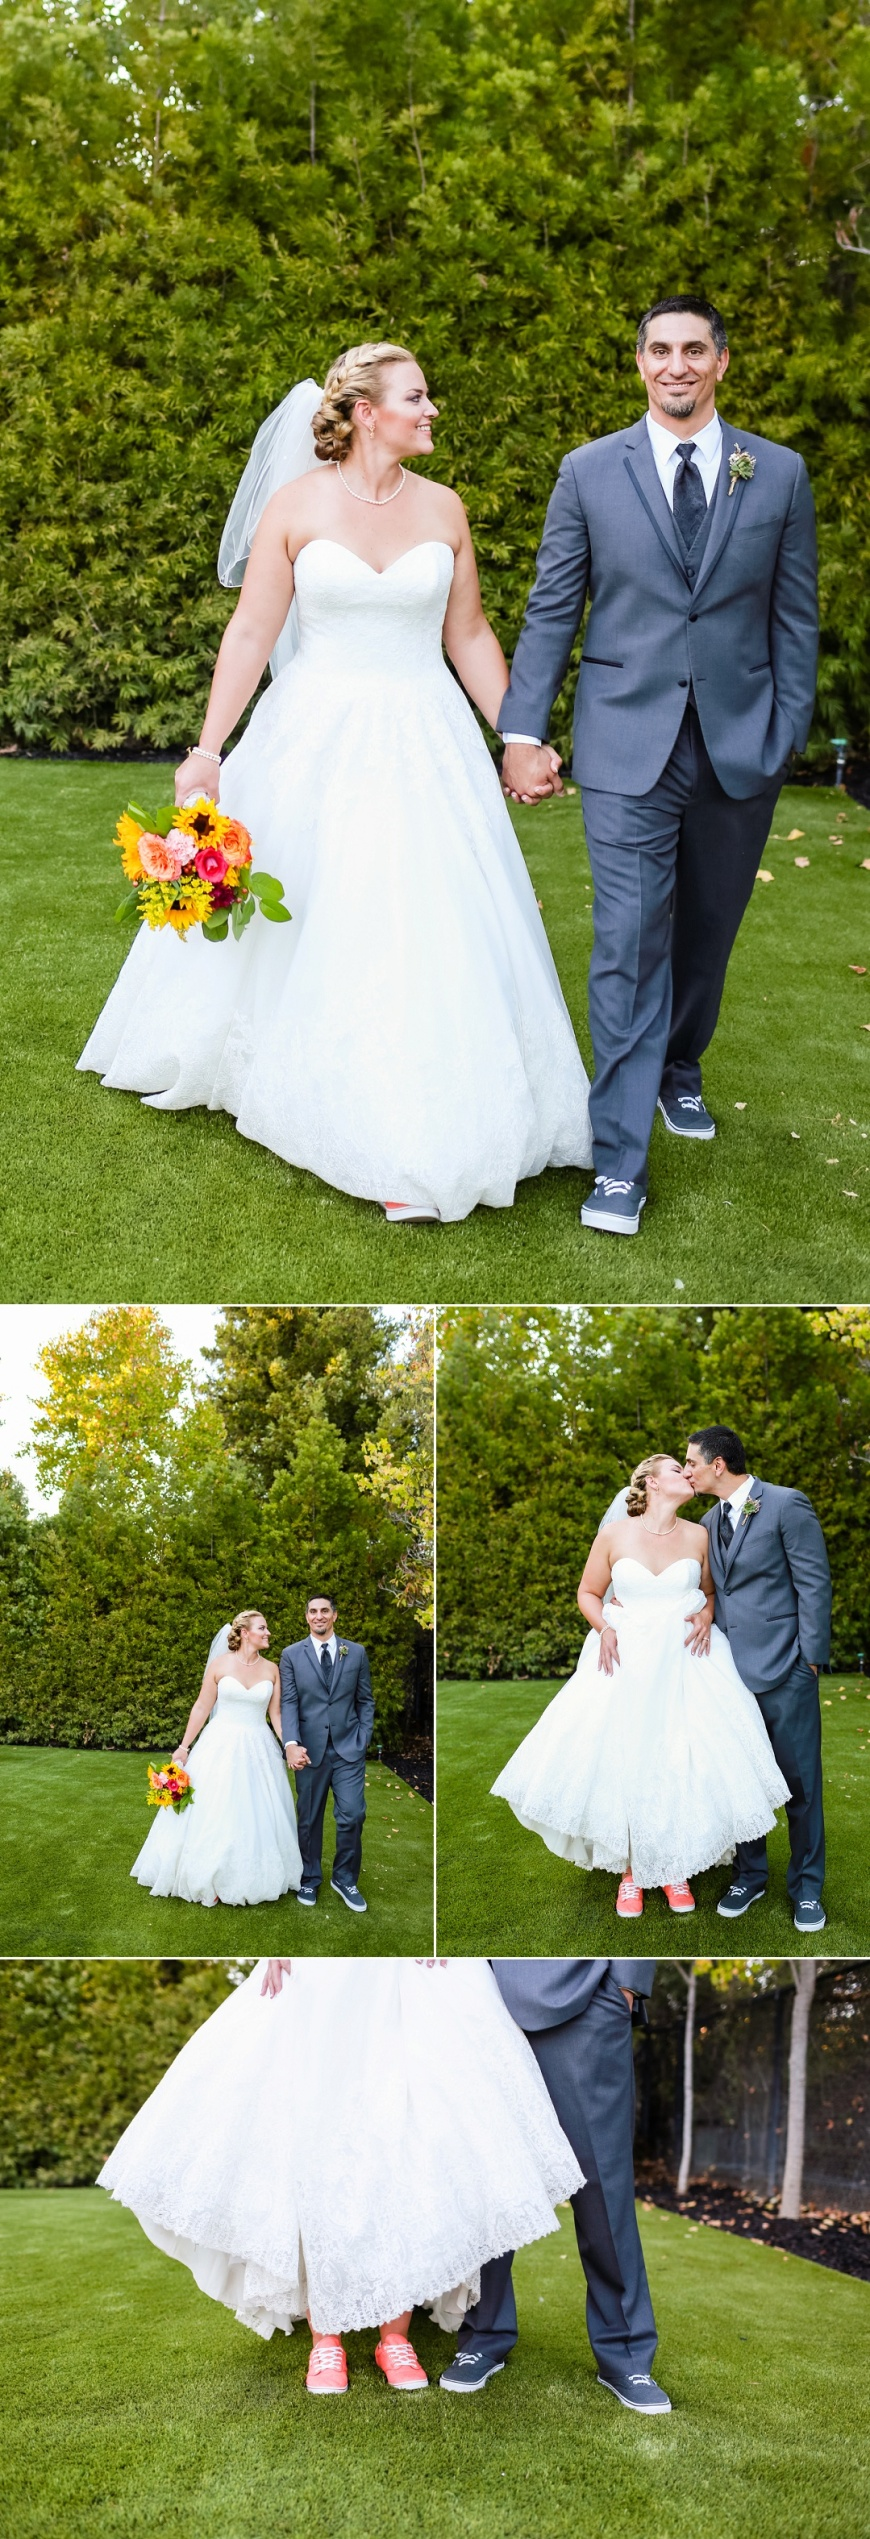 Monte-Sereno-Wedding-Photographer_1073.jpg